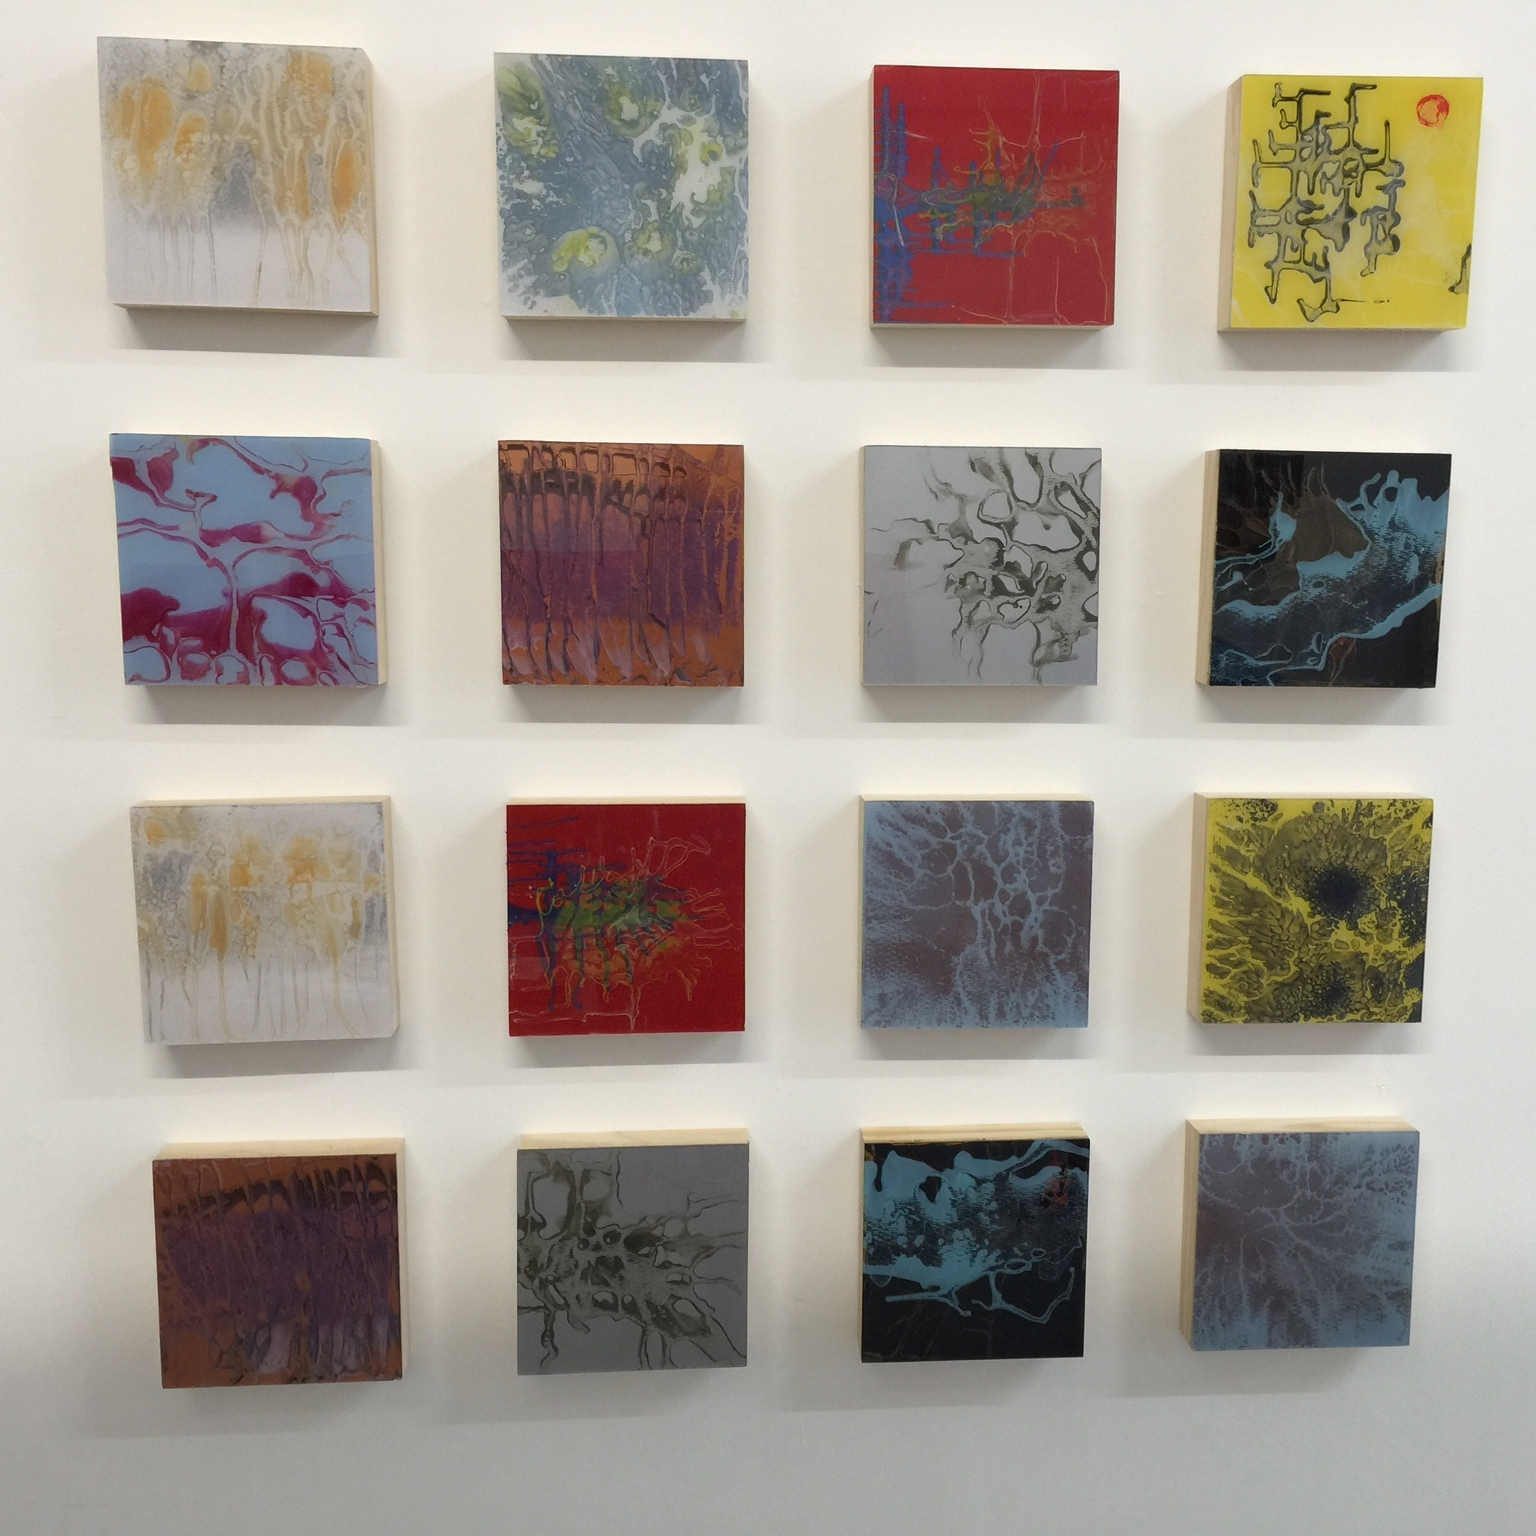 Wall of 8 x 8 inches